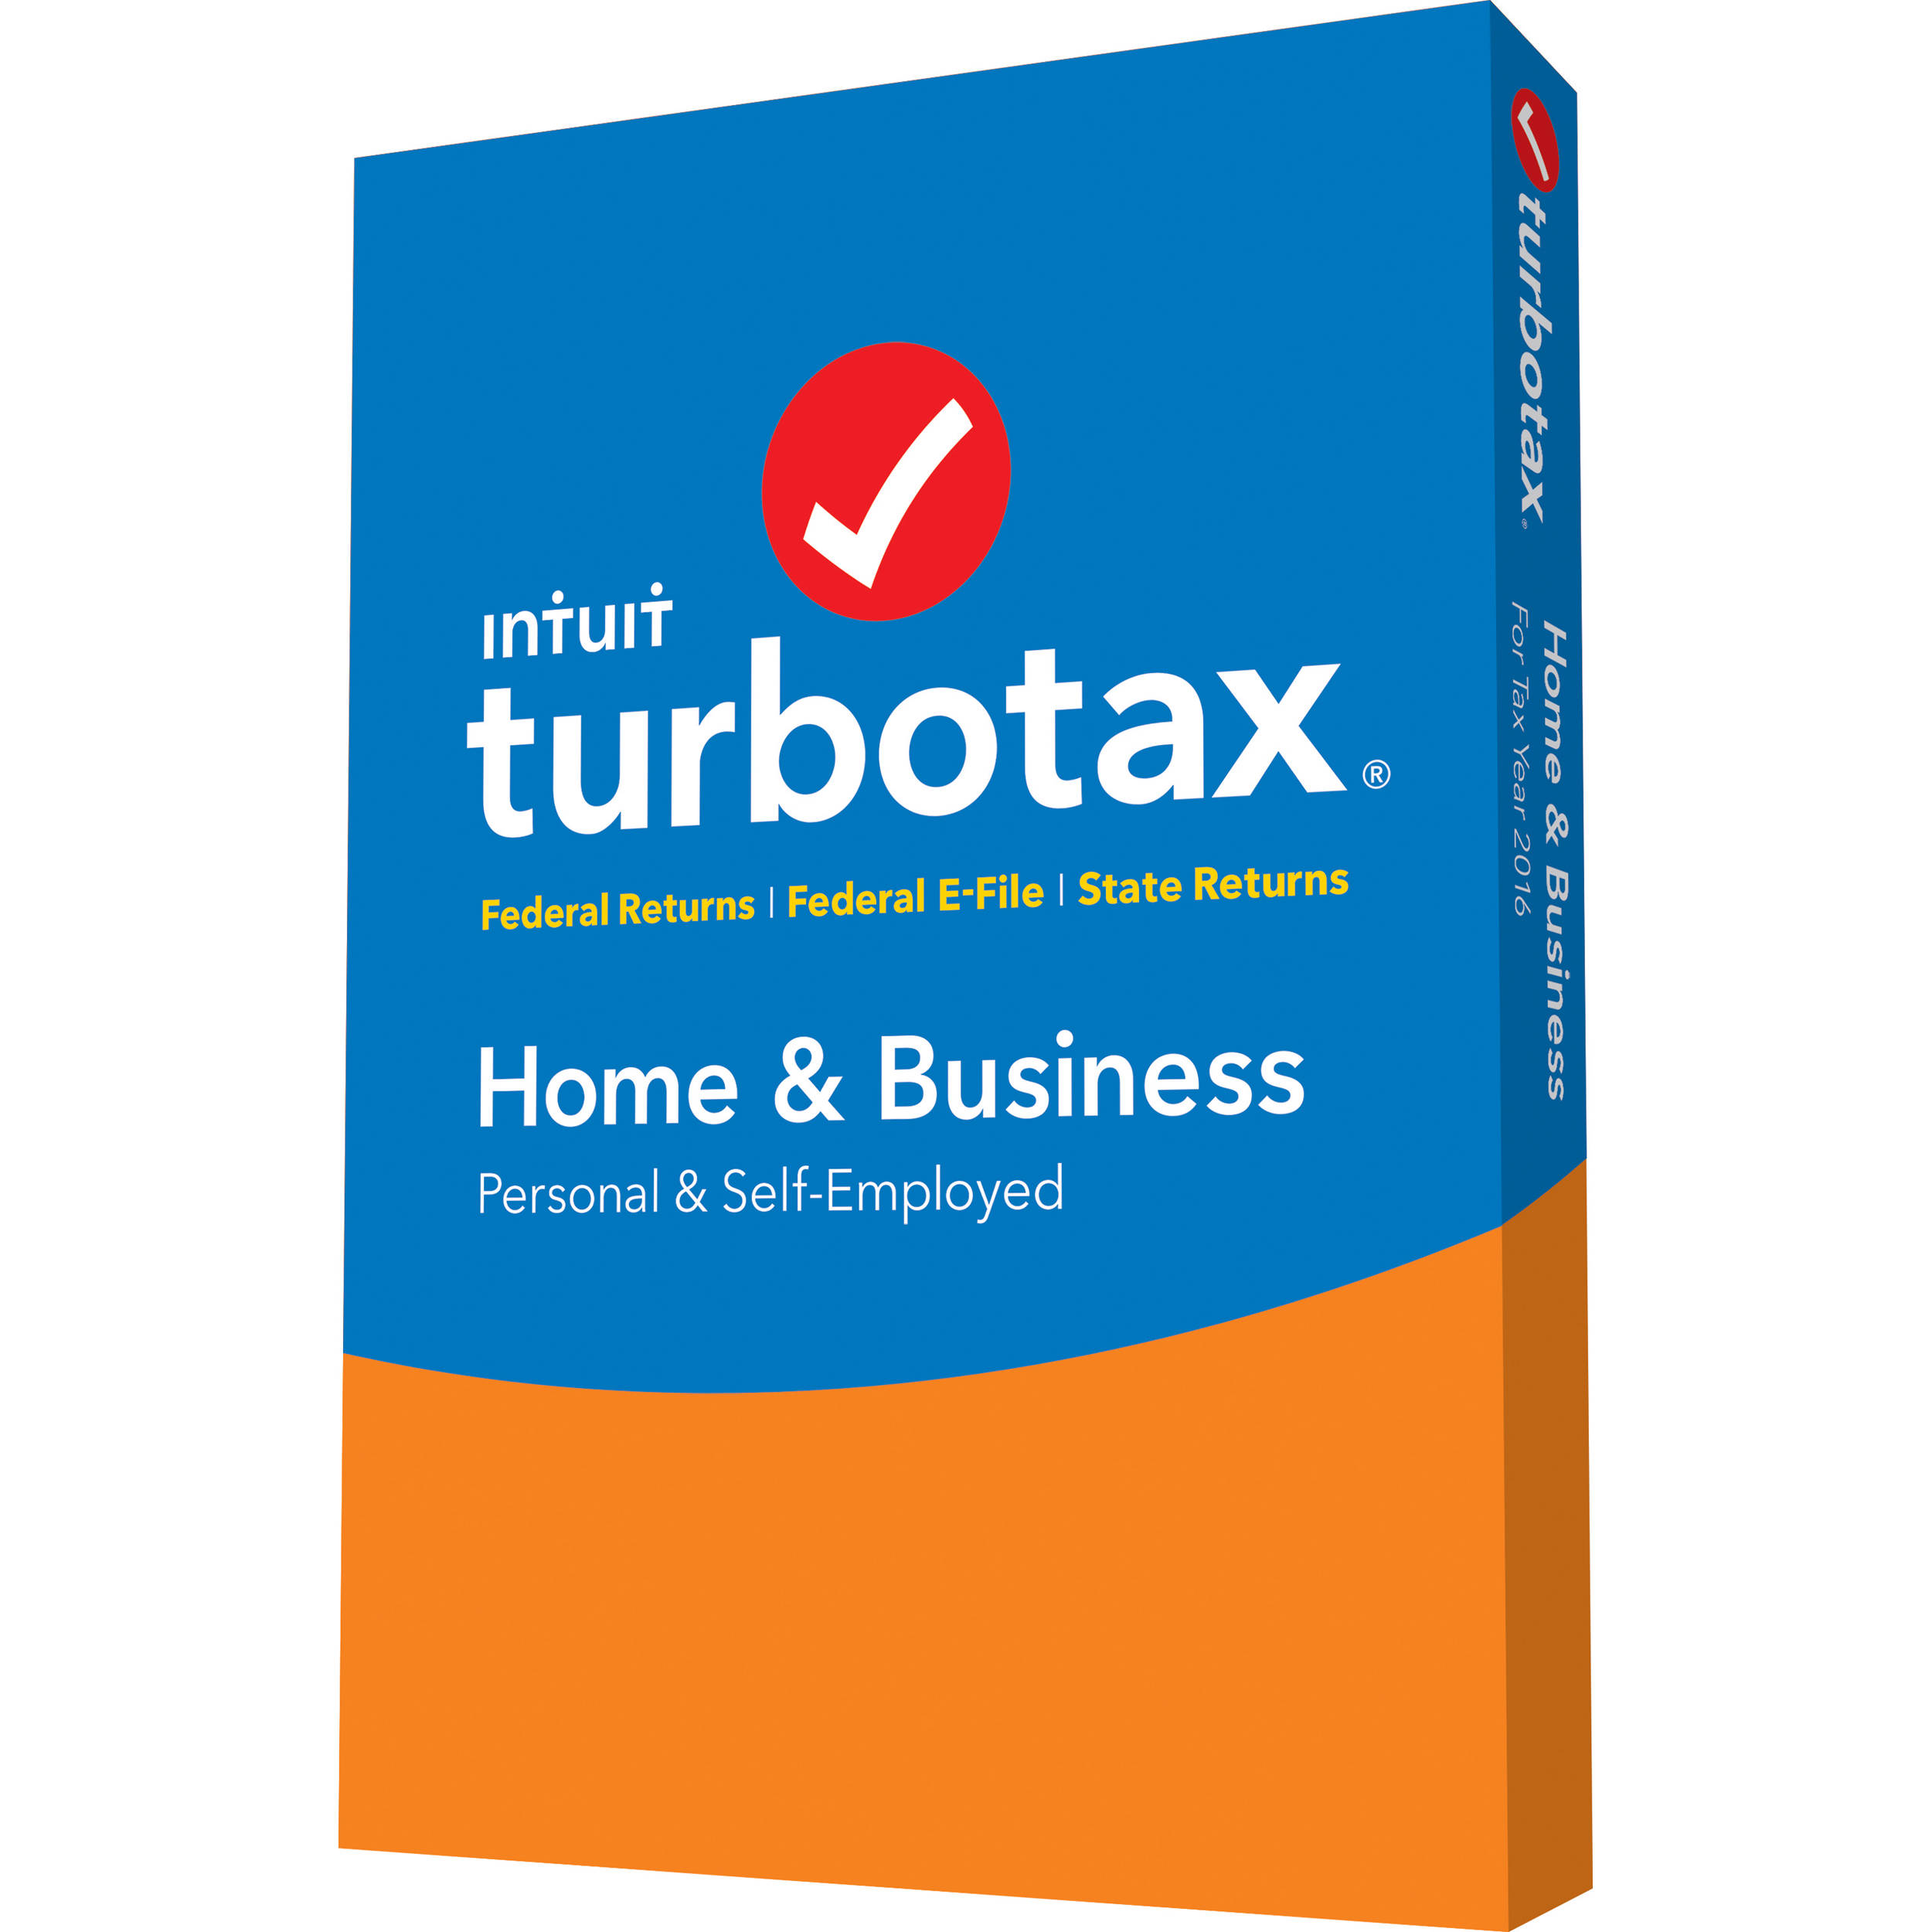 TurboTax® Home & Business CD/Download Customer Ratings & Product Reviews